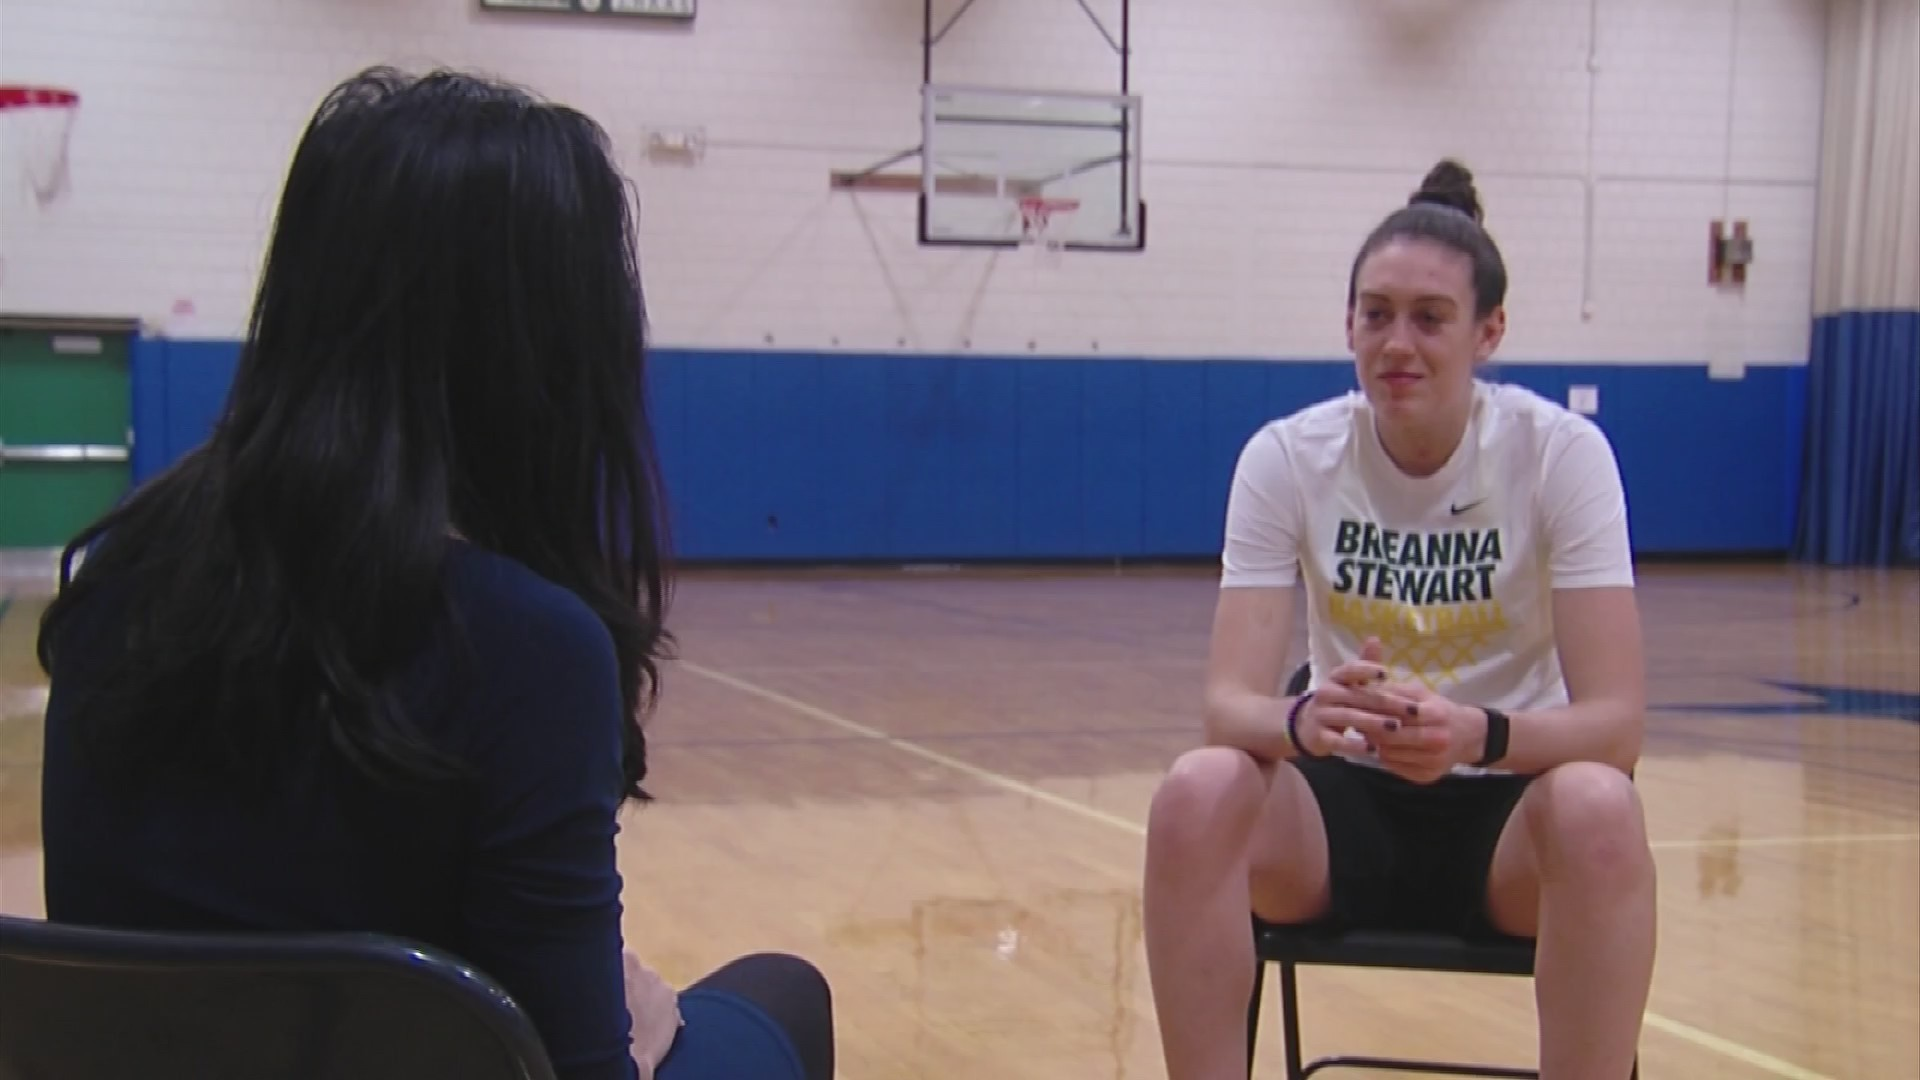 VIDEO: WNBA star, Olympic gold medalist Breanna Stewart aiming beyond arc to impact world